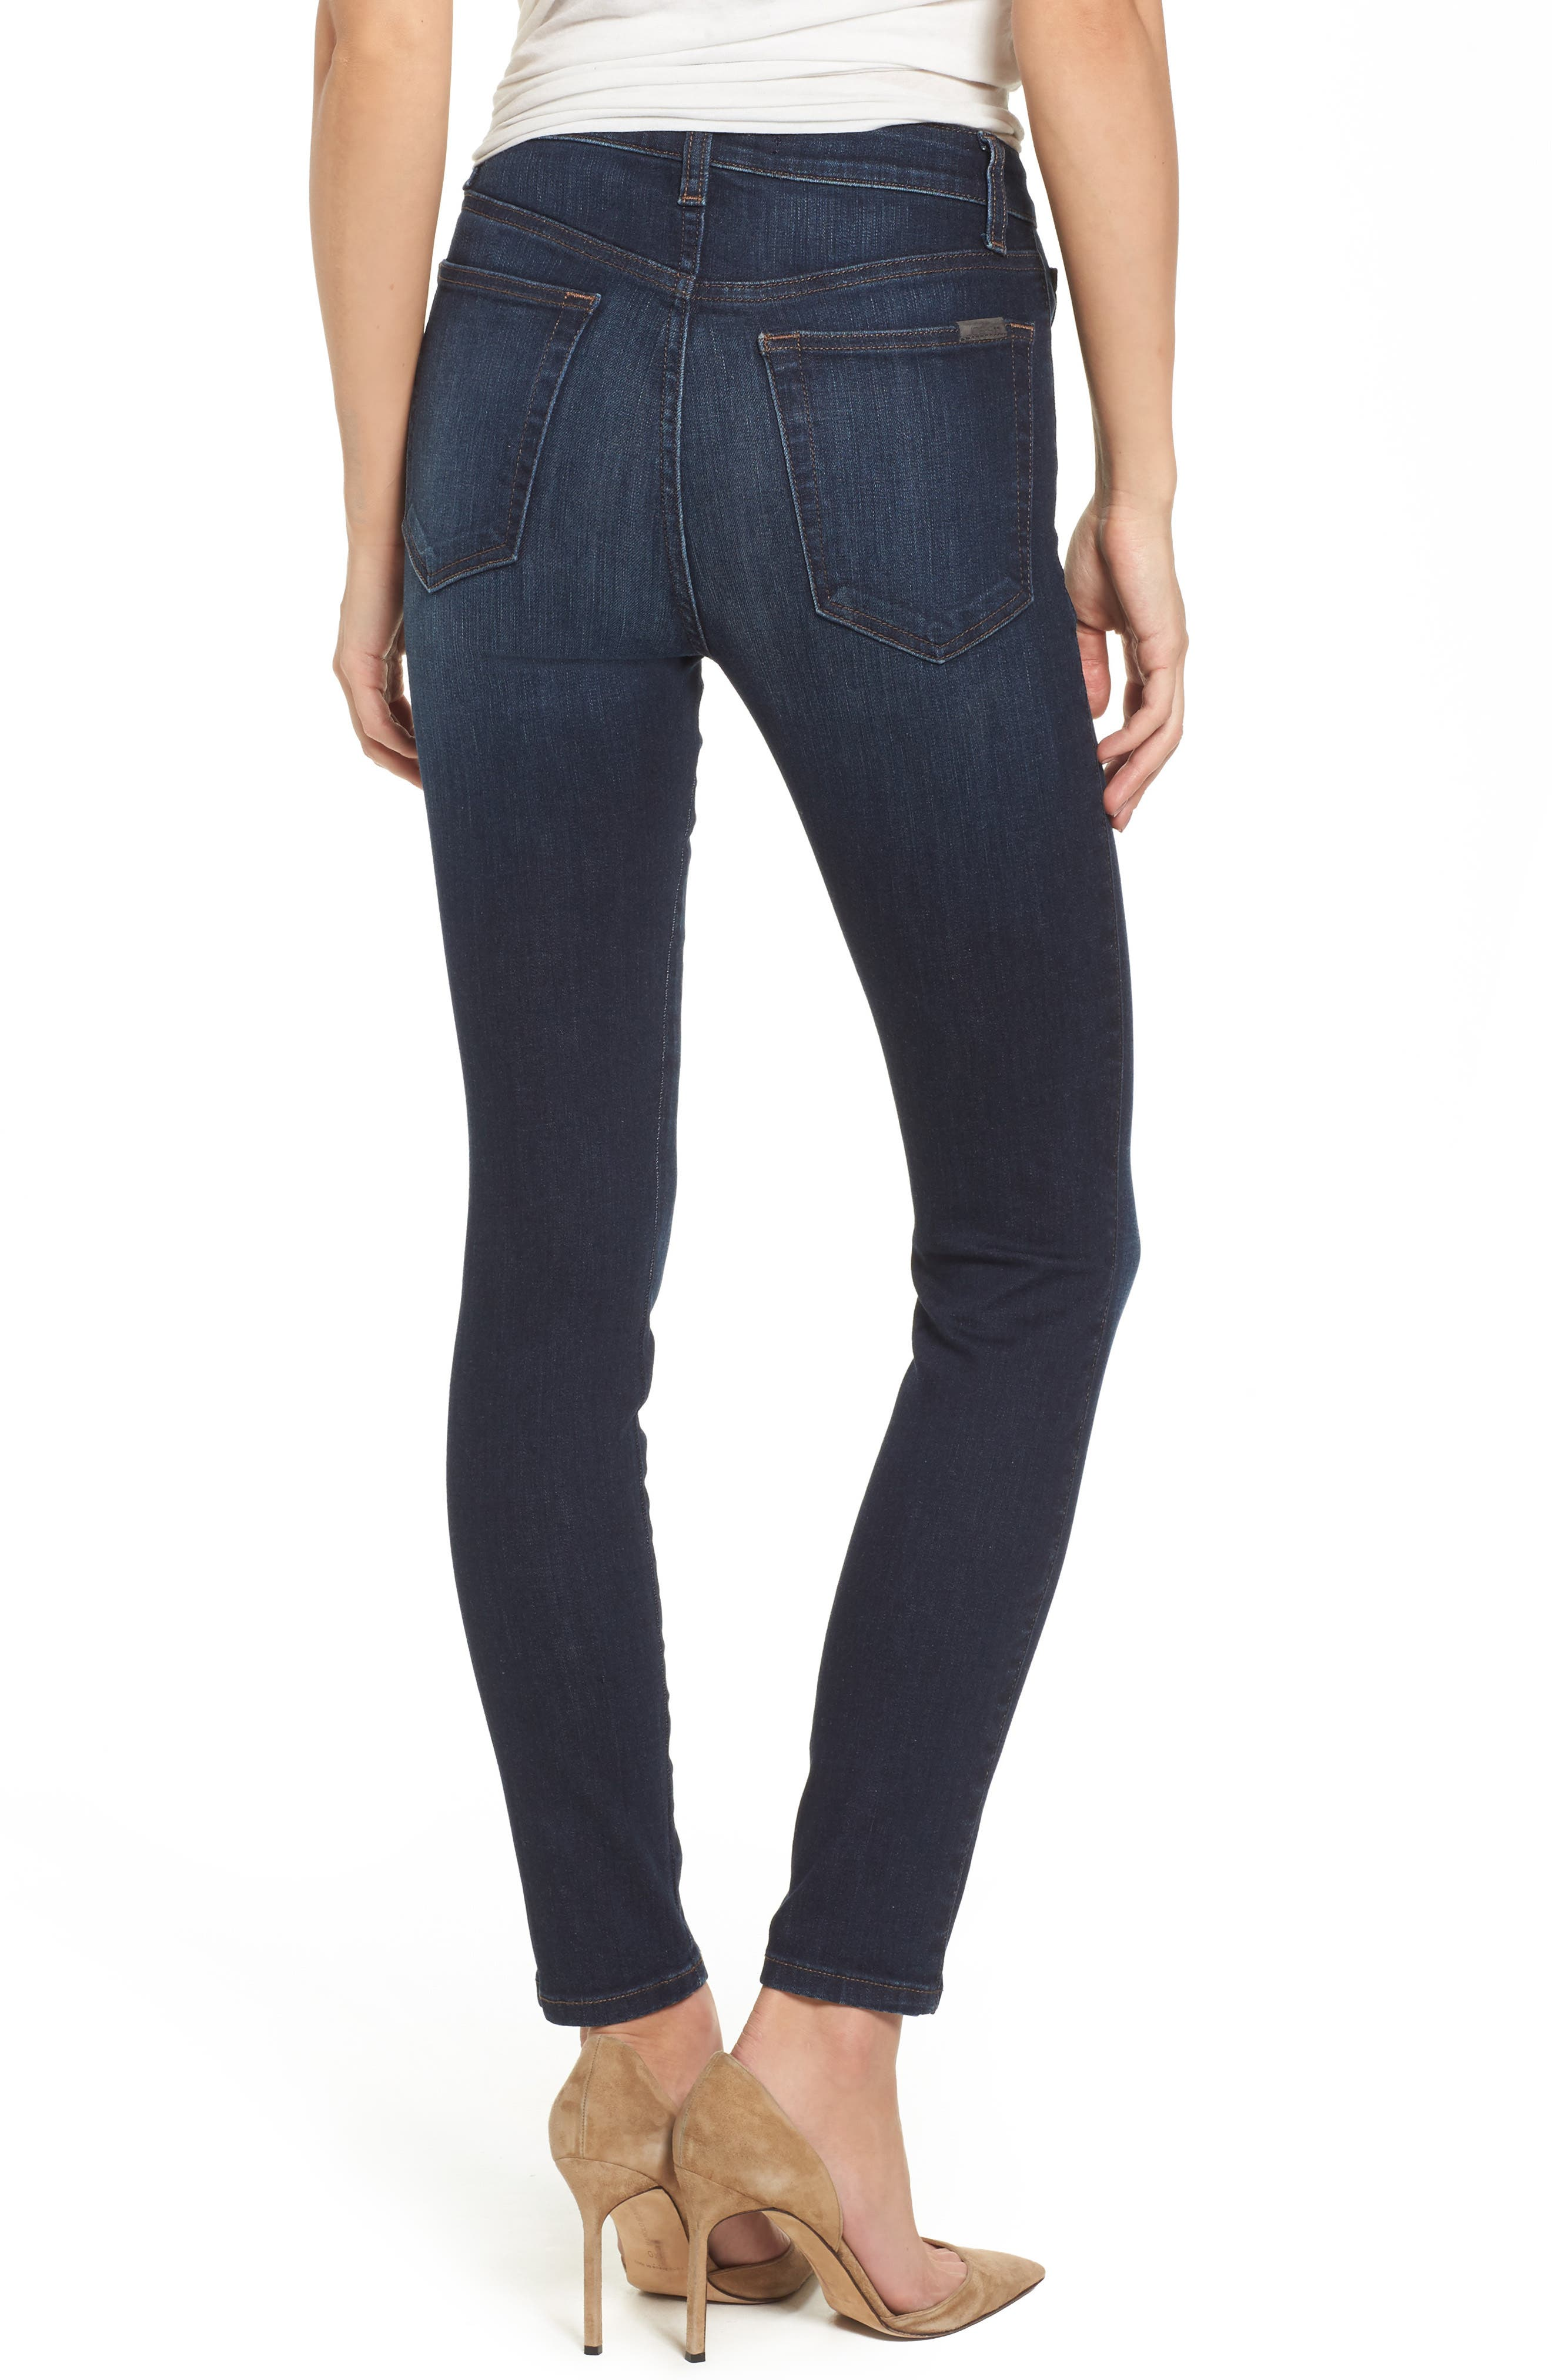 Charlie High Waist Skinny Jeans,                             Alternate thumbnail 2, color,                             405